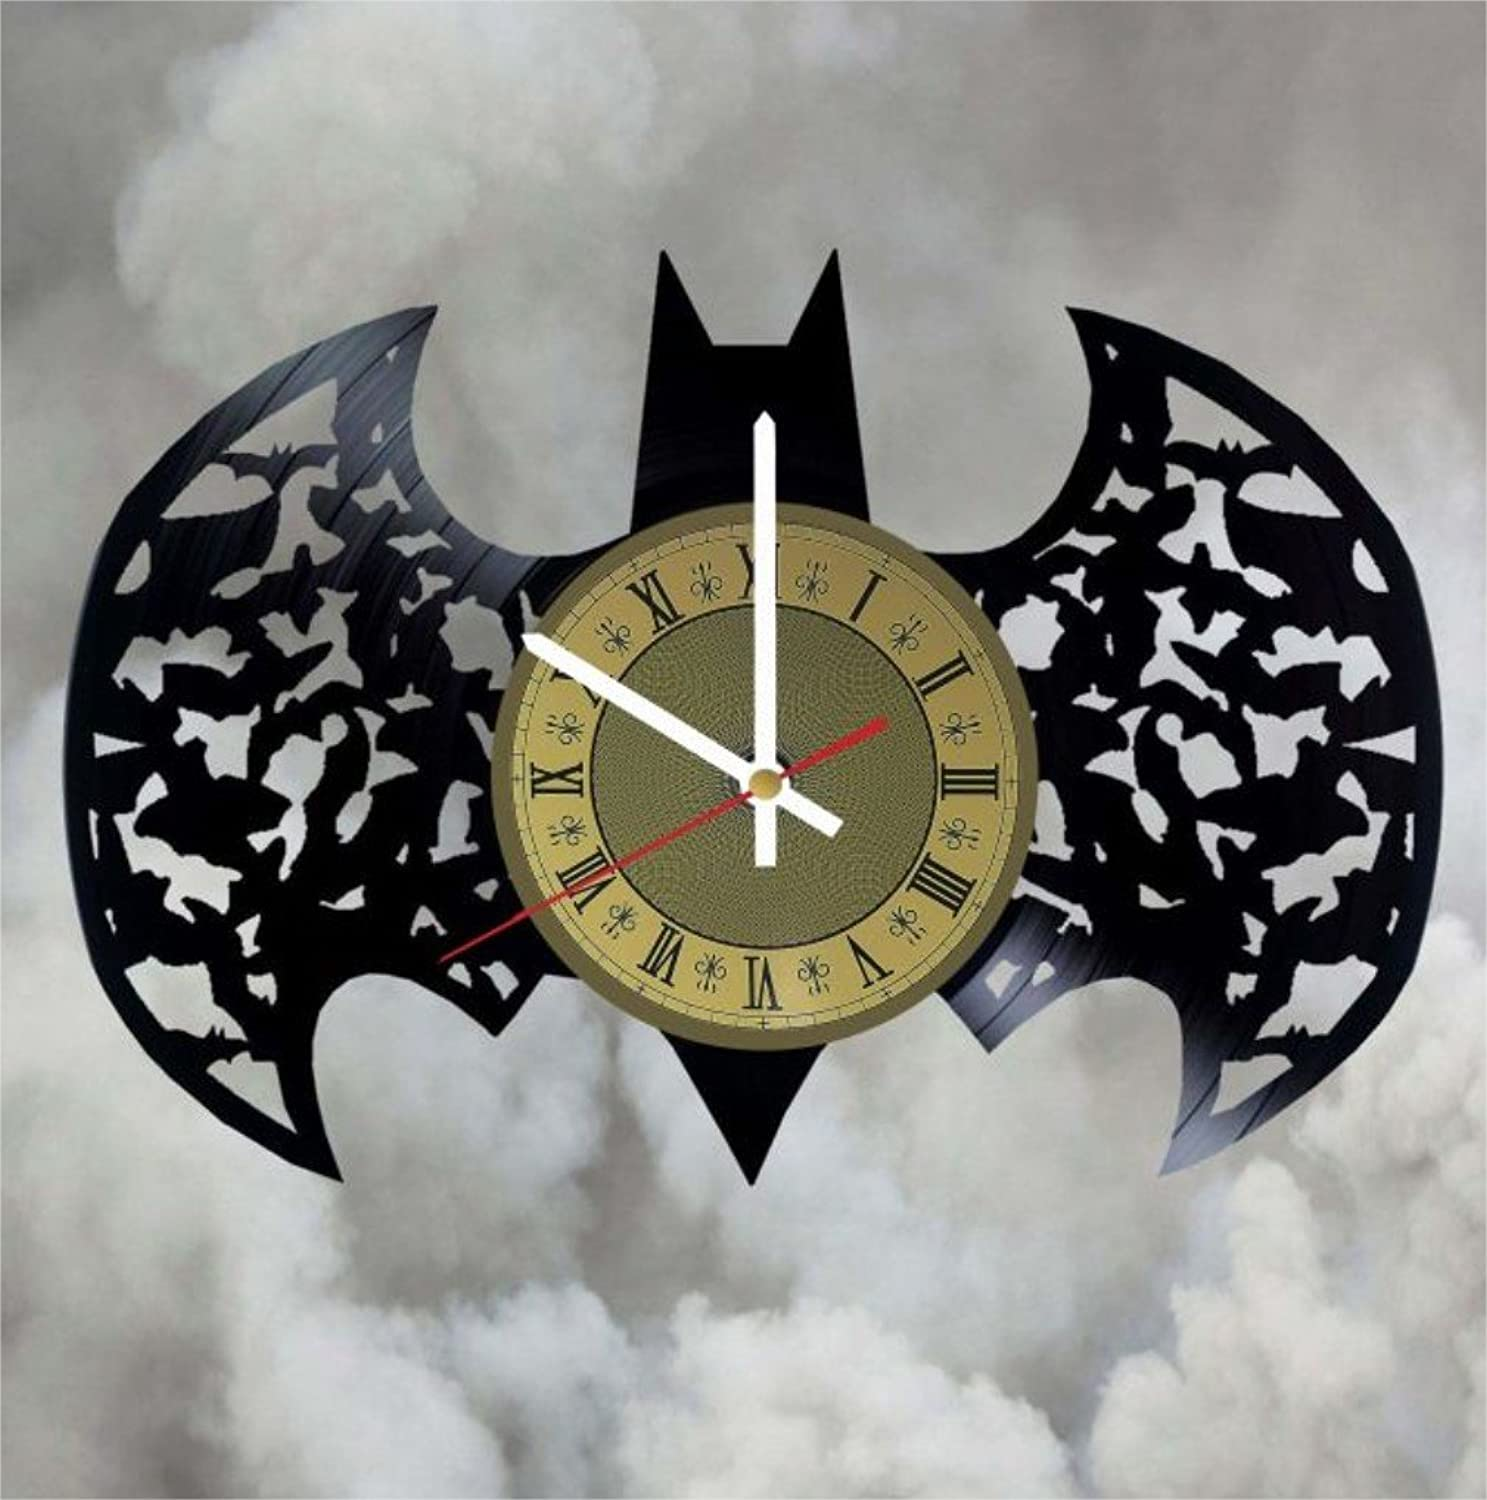 Batman Design Vinyl Wall Clock DC Comics Great Gift for Men, Women, Kids, Girls and Boys, Birthday, Christmas Beautiful Home Decor - Unique Design That Made Out of Vinyl LP Record